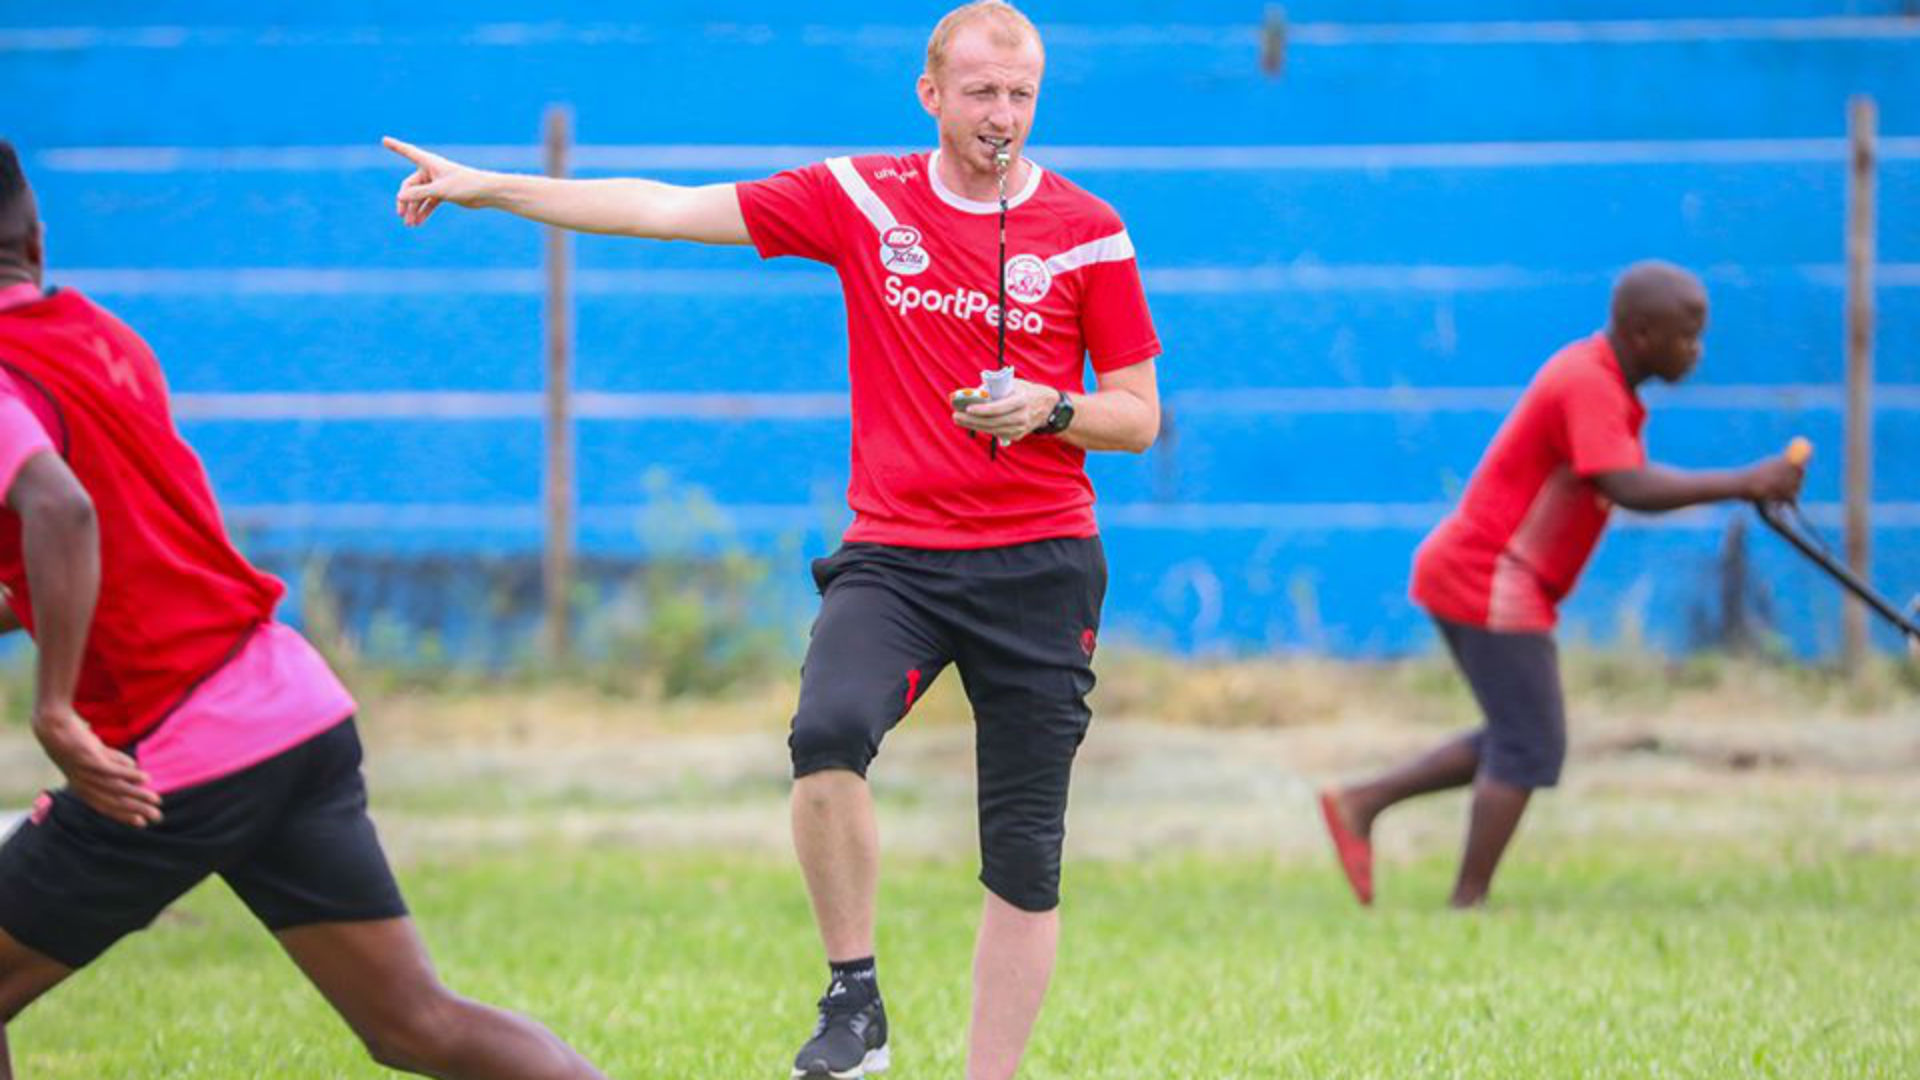 Vandenbroeck explains why it will be tough for Simba SC to win FA Cup